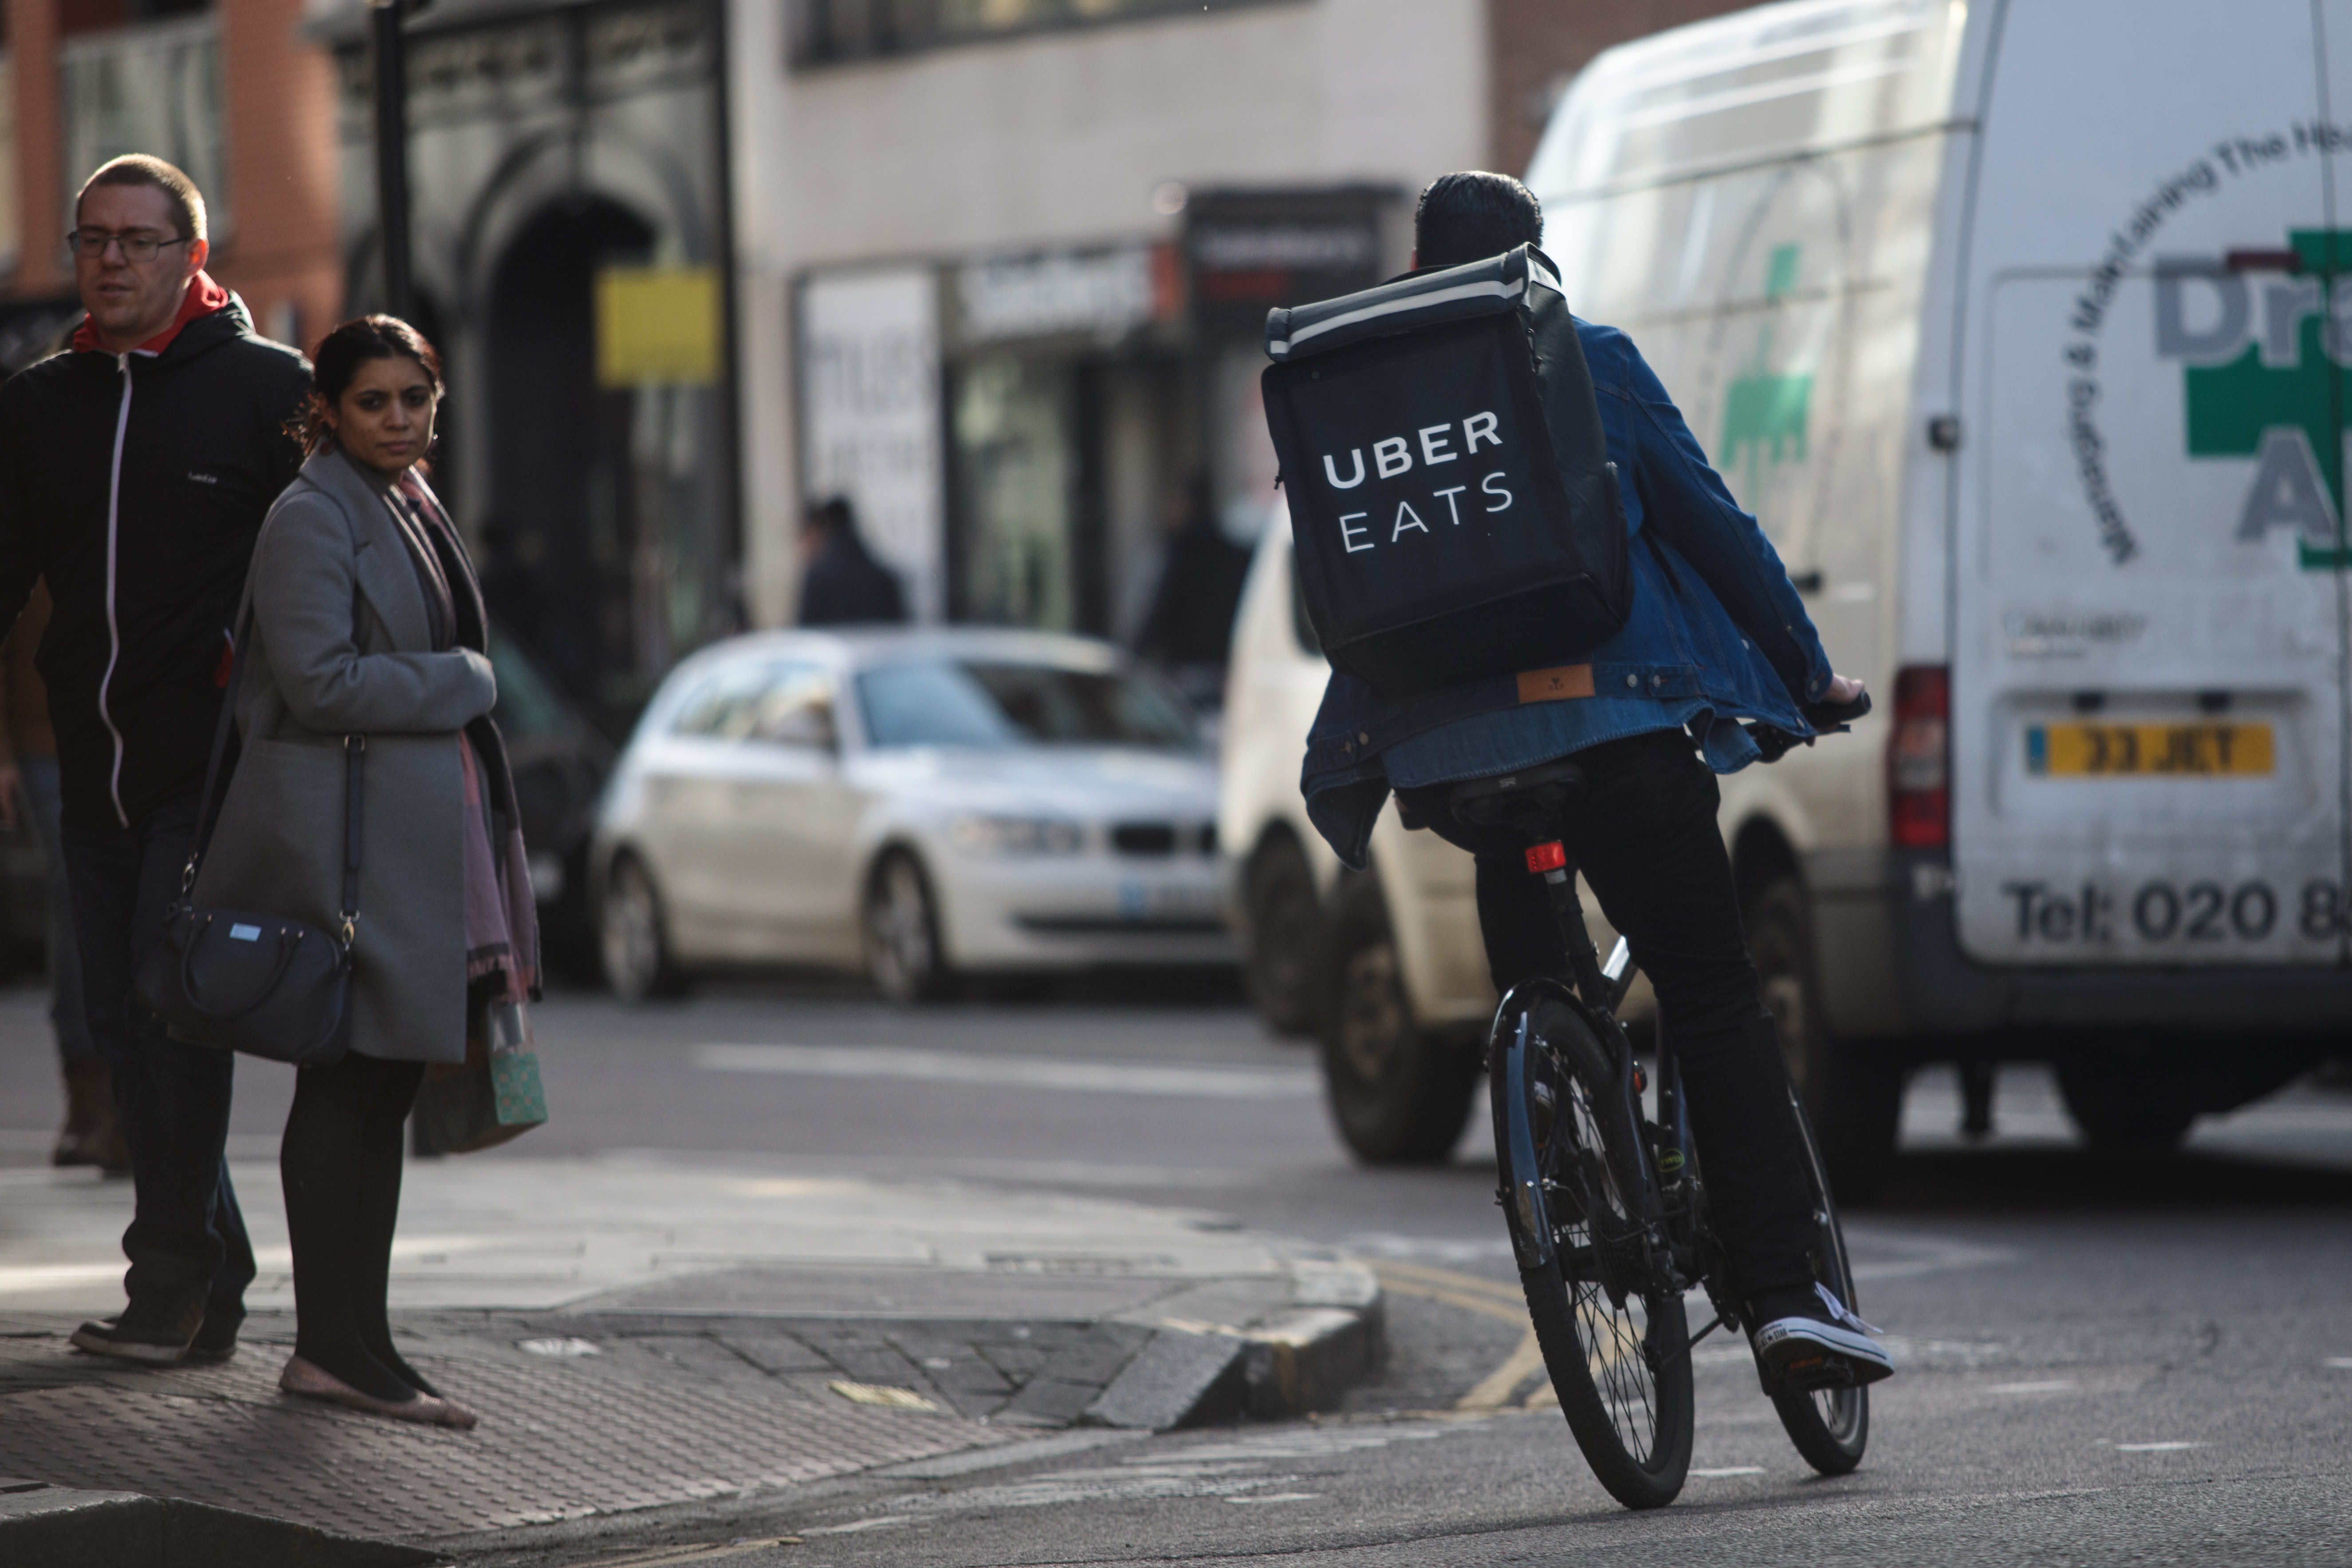 UK Govt Promises Overhaul Of Workers Rights to Protect Those In Gig Economy